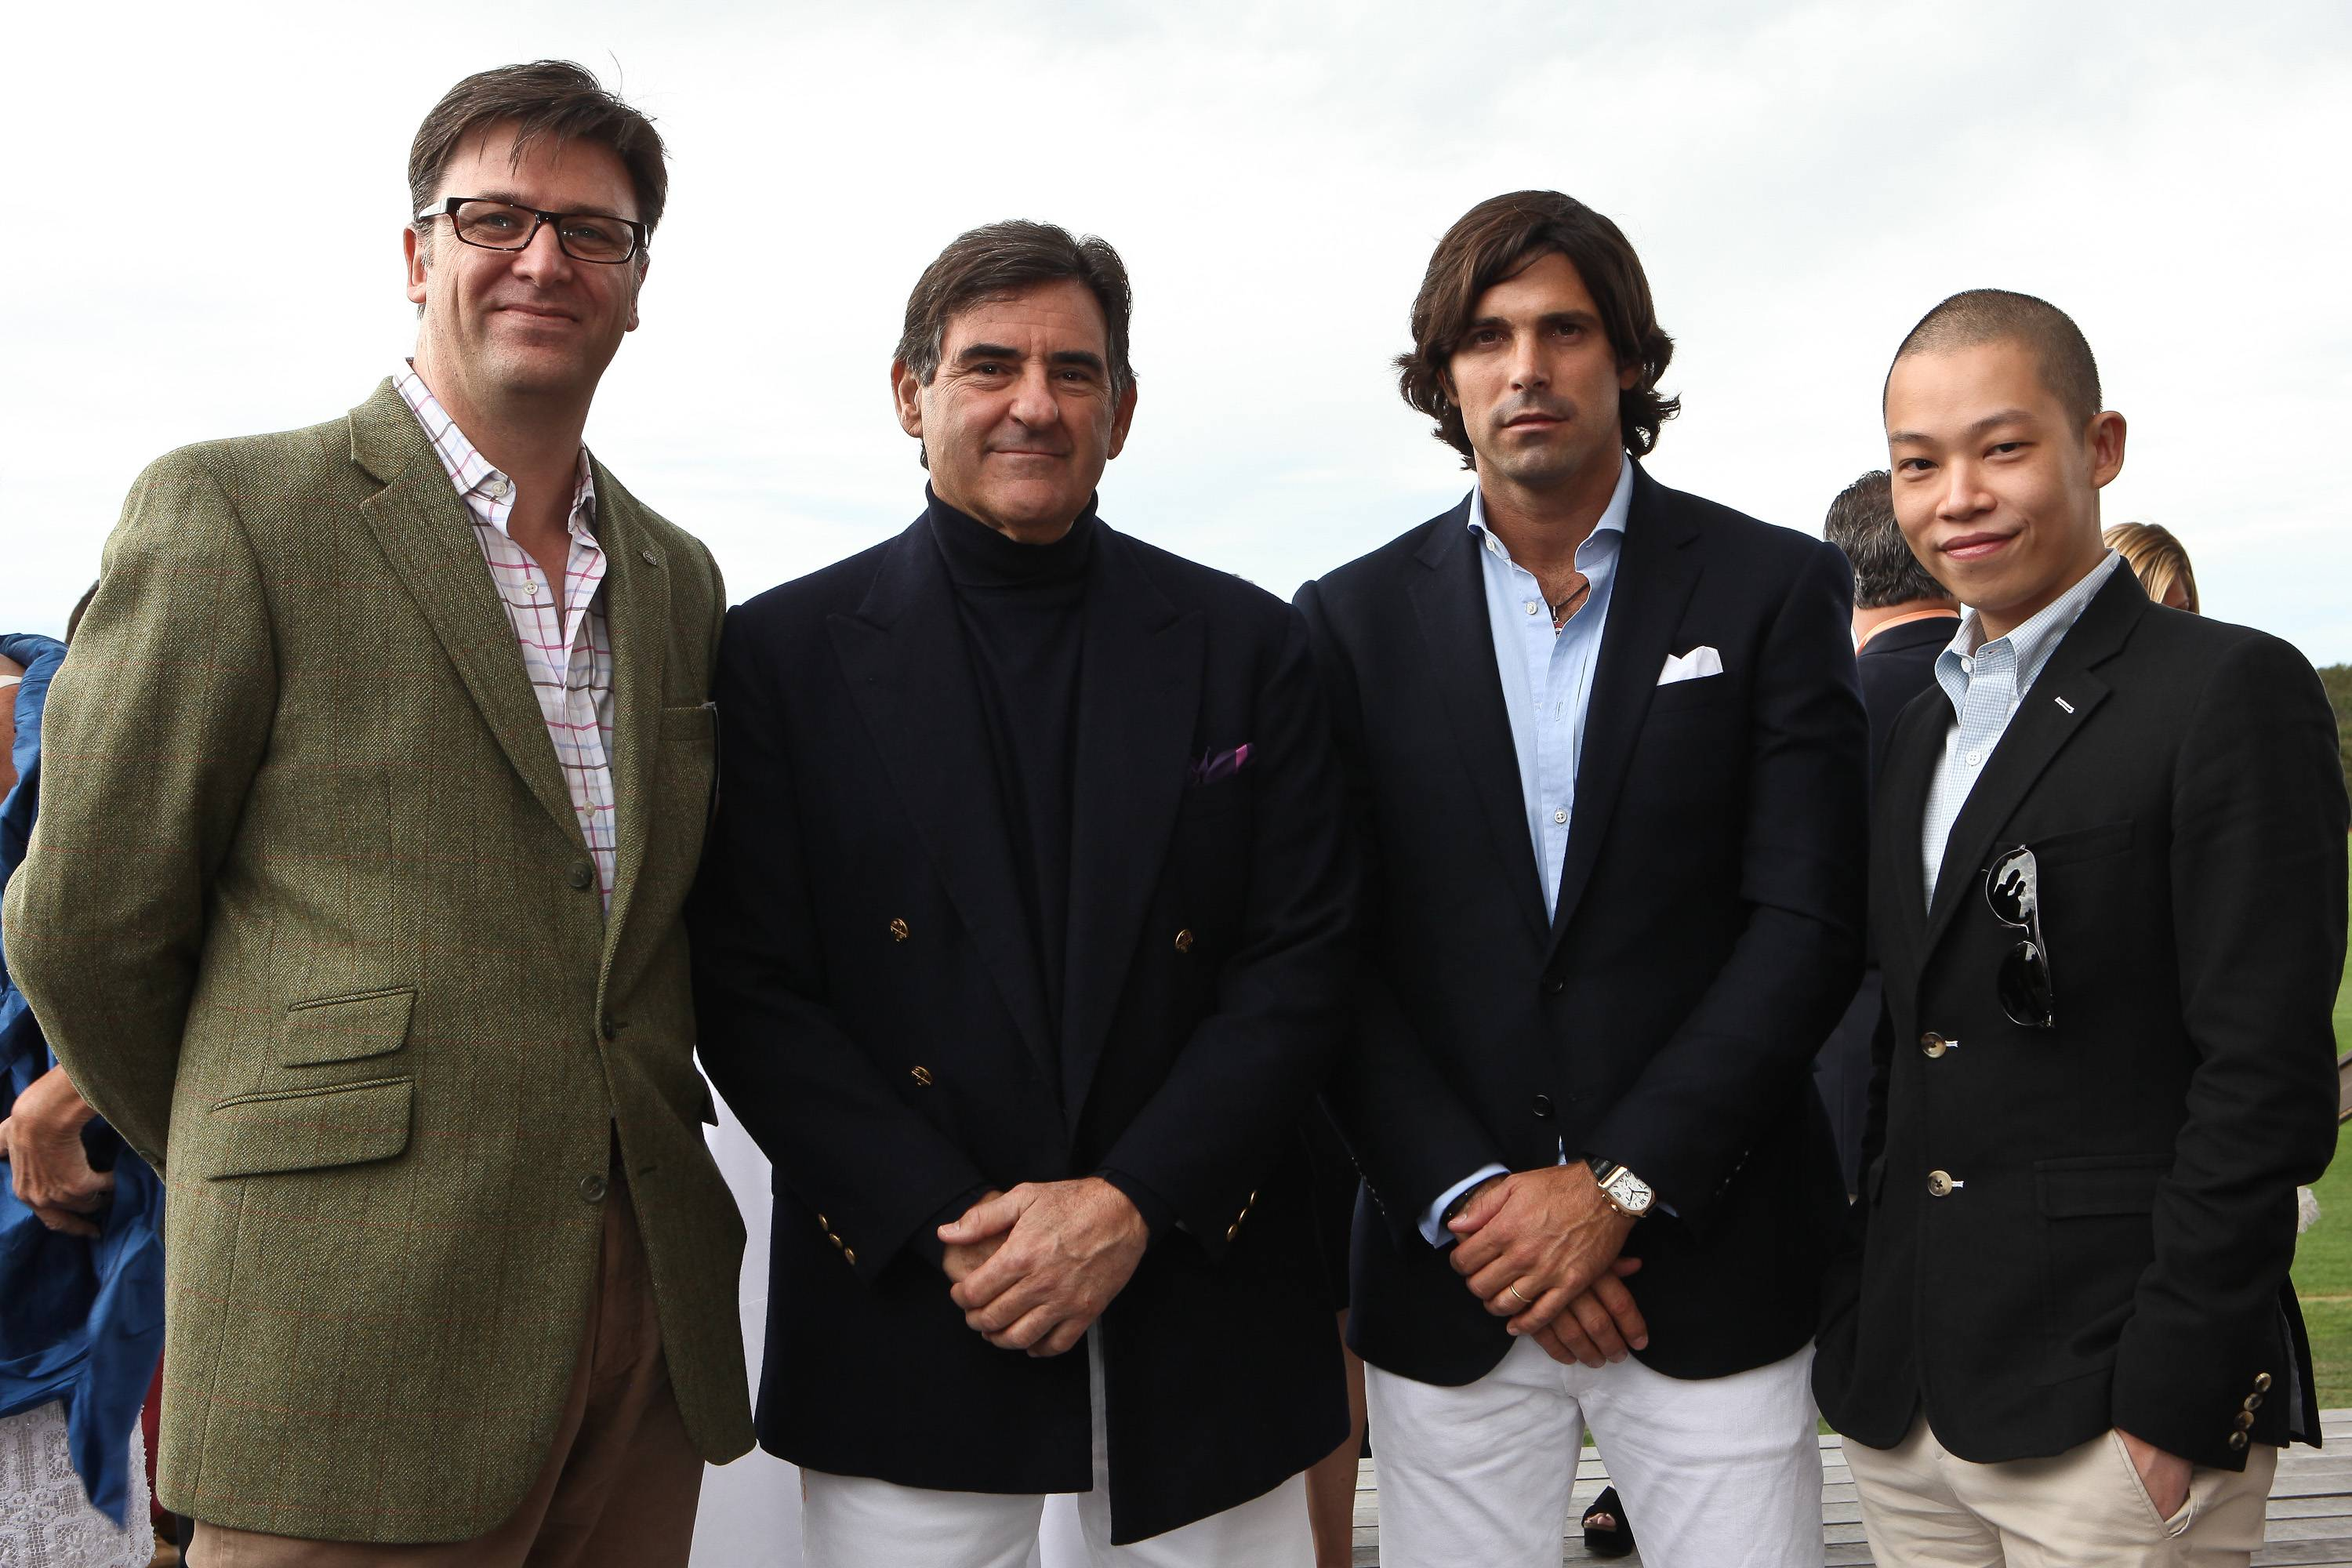 Paul James, Peter Brant, Nacho Figueras, Jason Wu